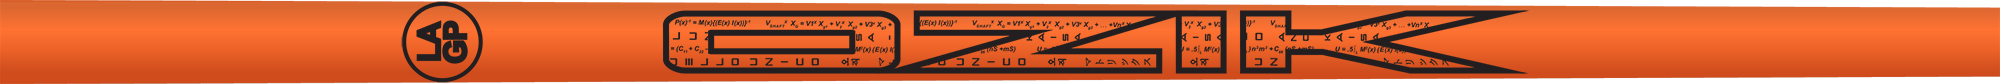 Ozik White Tie: Neon Orange Black Satin - Wood 50 S